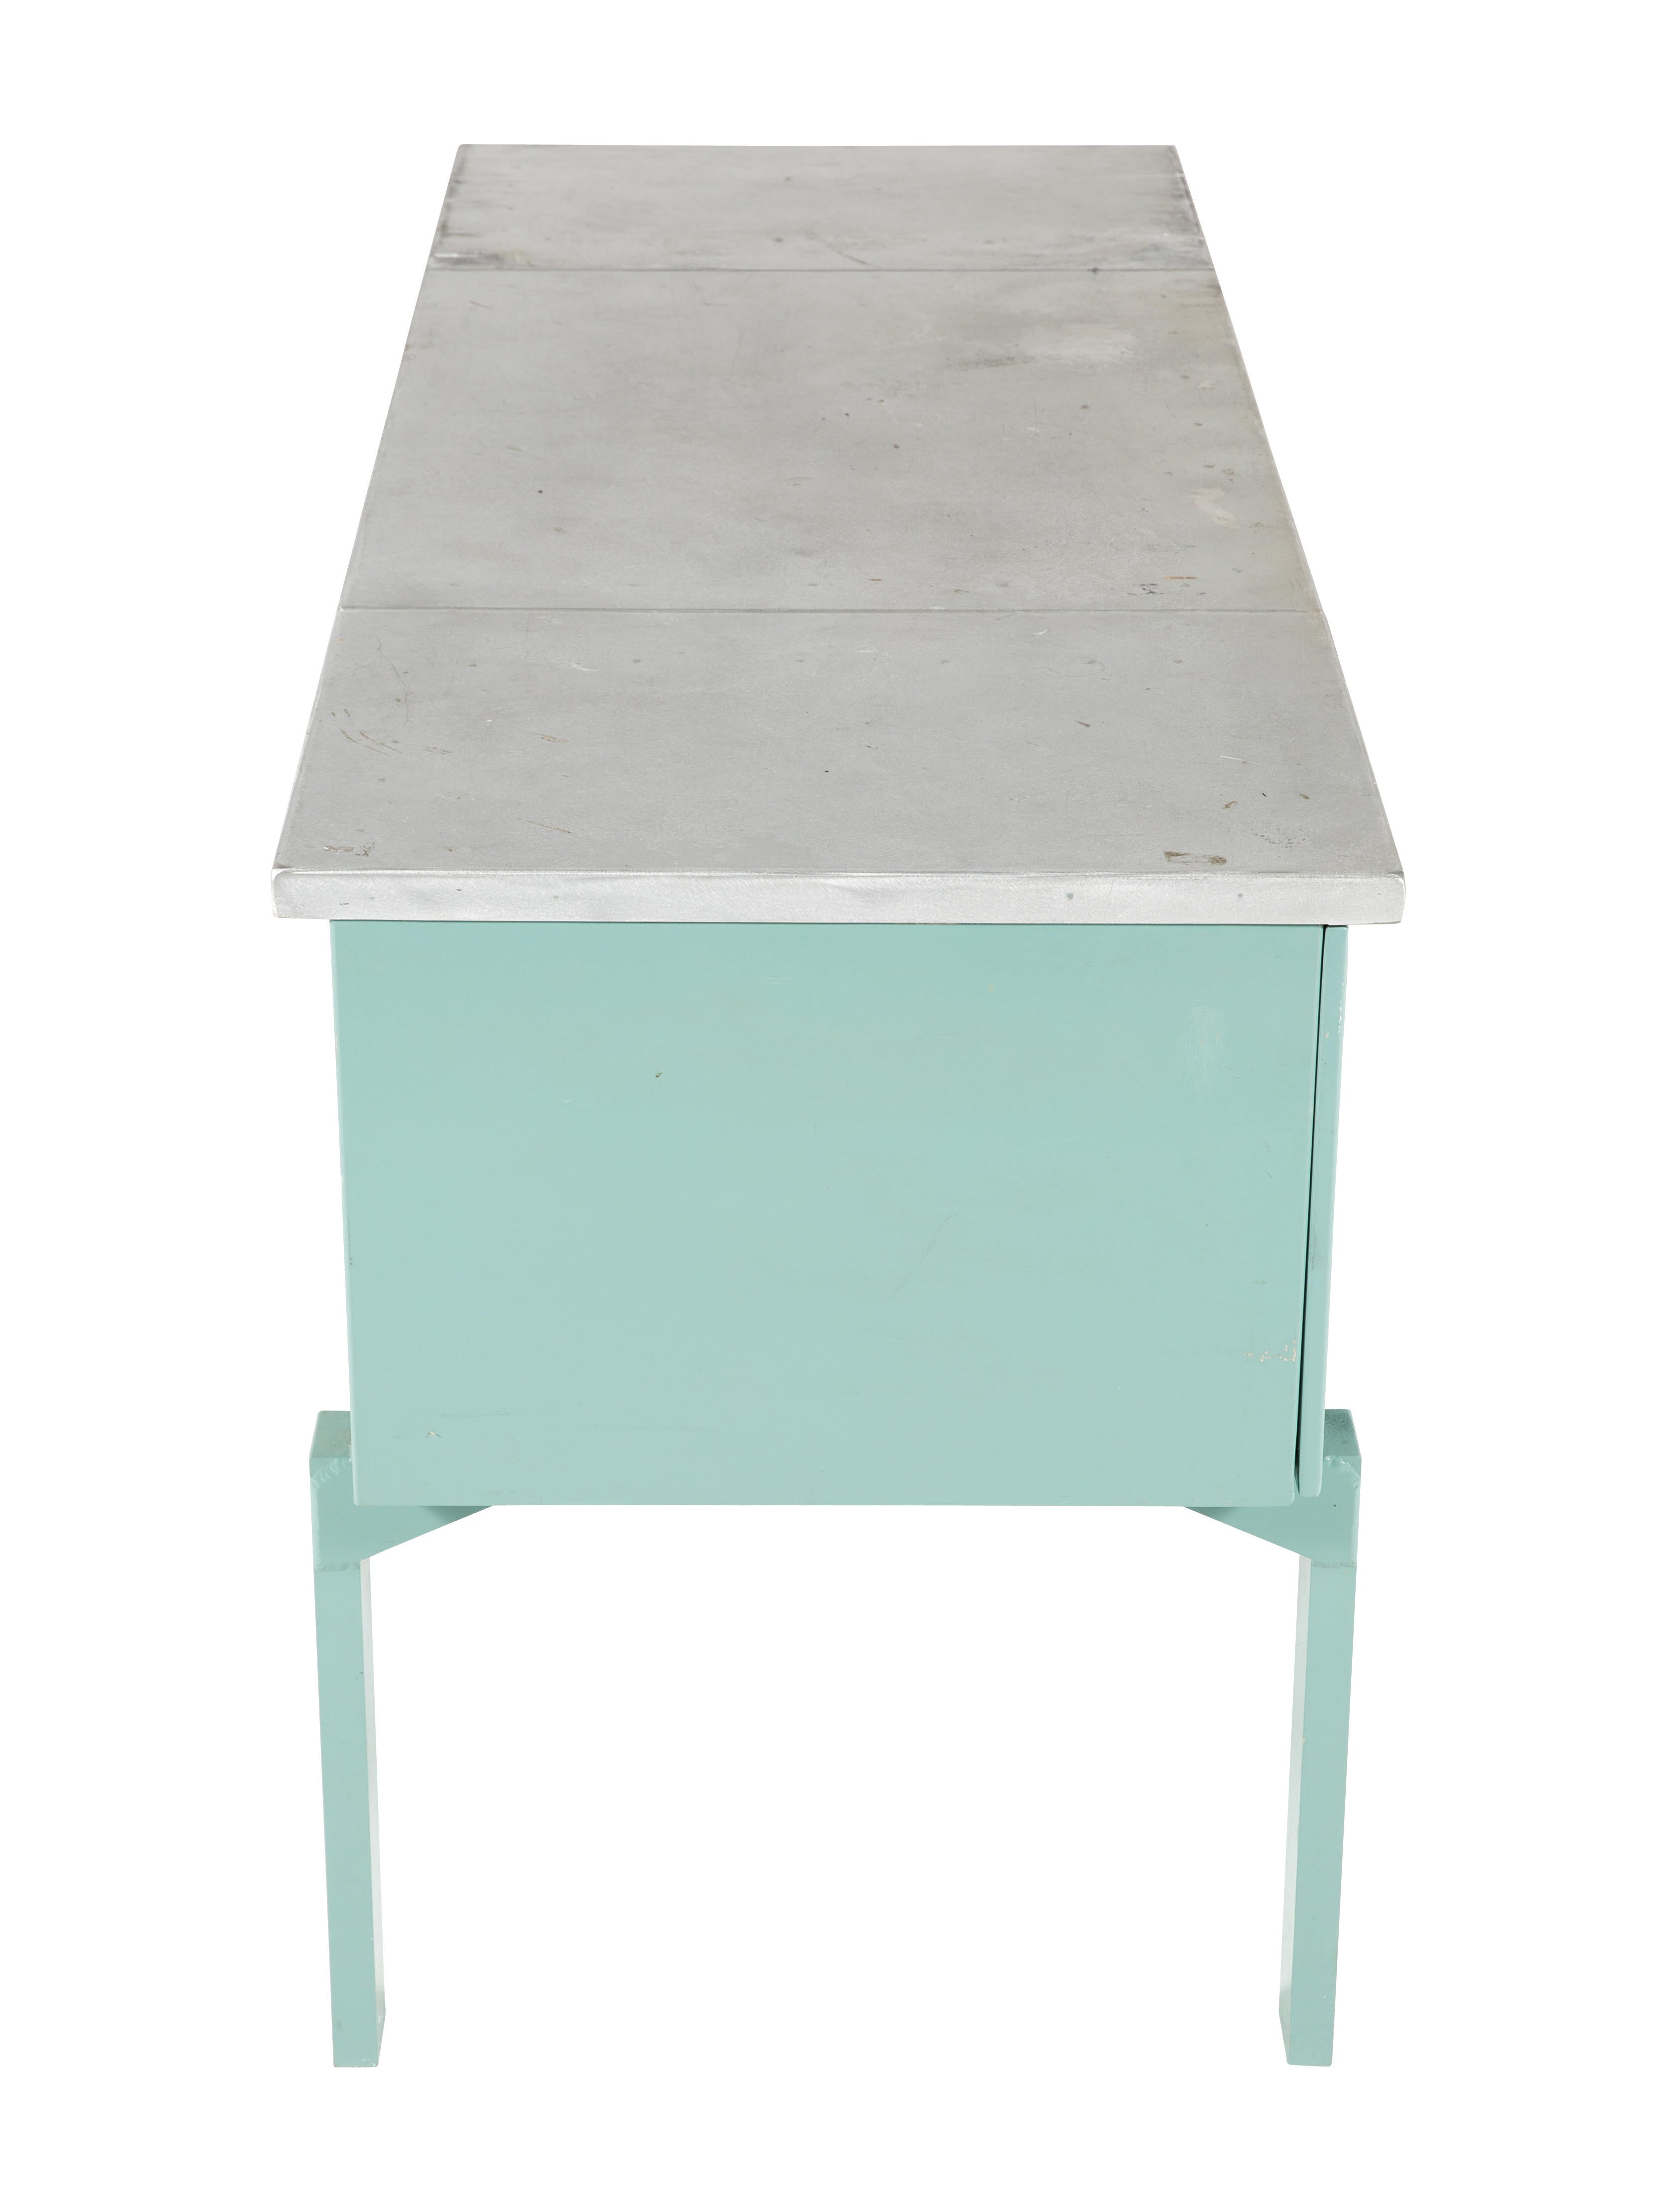 Turquoise Painted Metal Desk Furniture Table20448 The Realreal